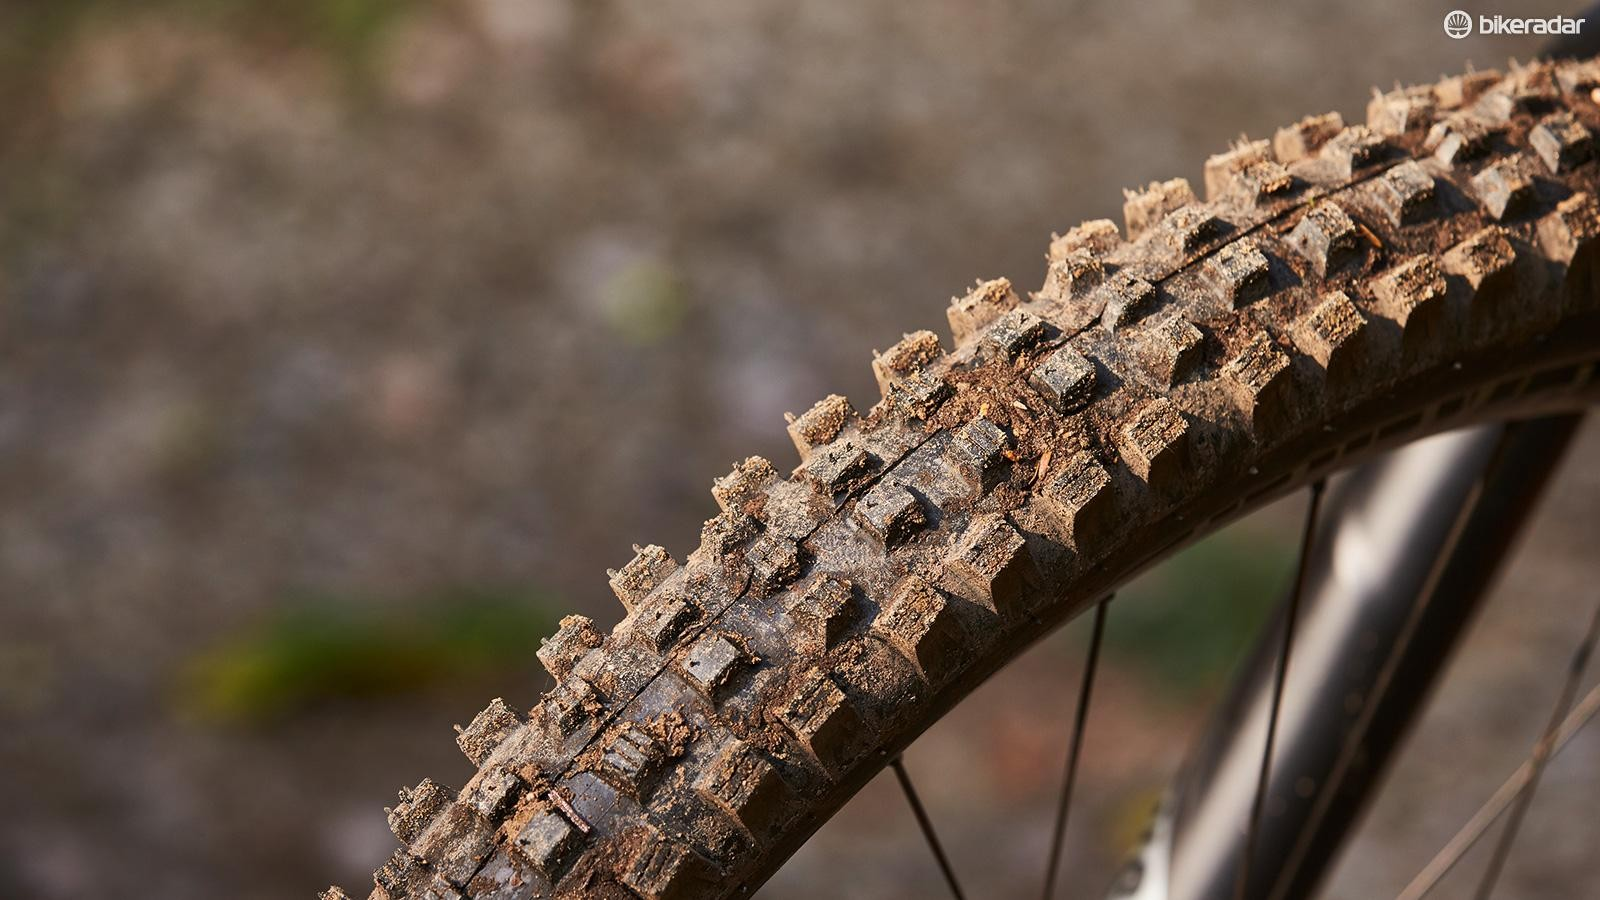 Schwalbe Magic Mary Snakeskin TrailStar rubber up front